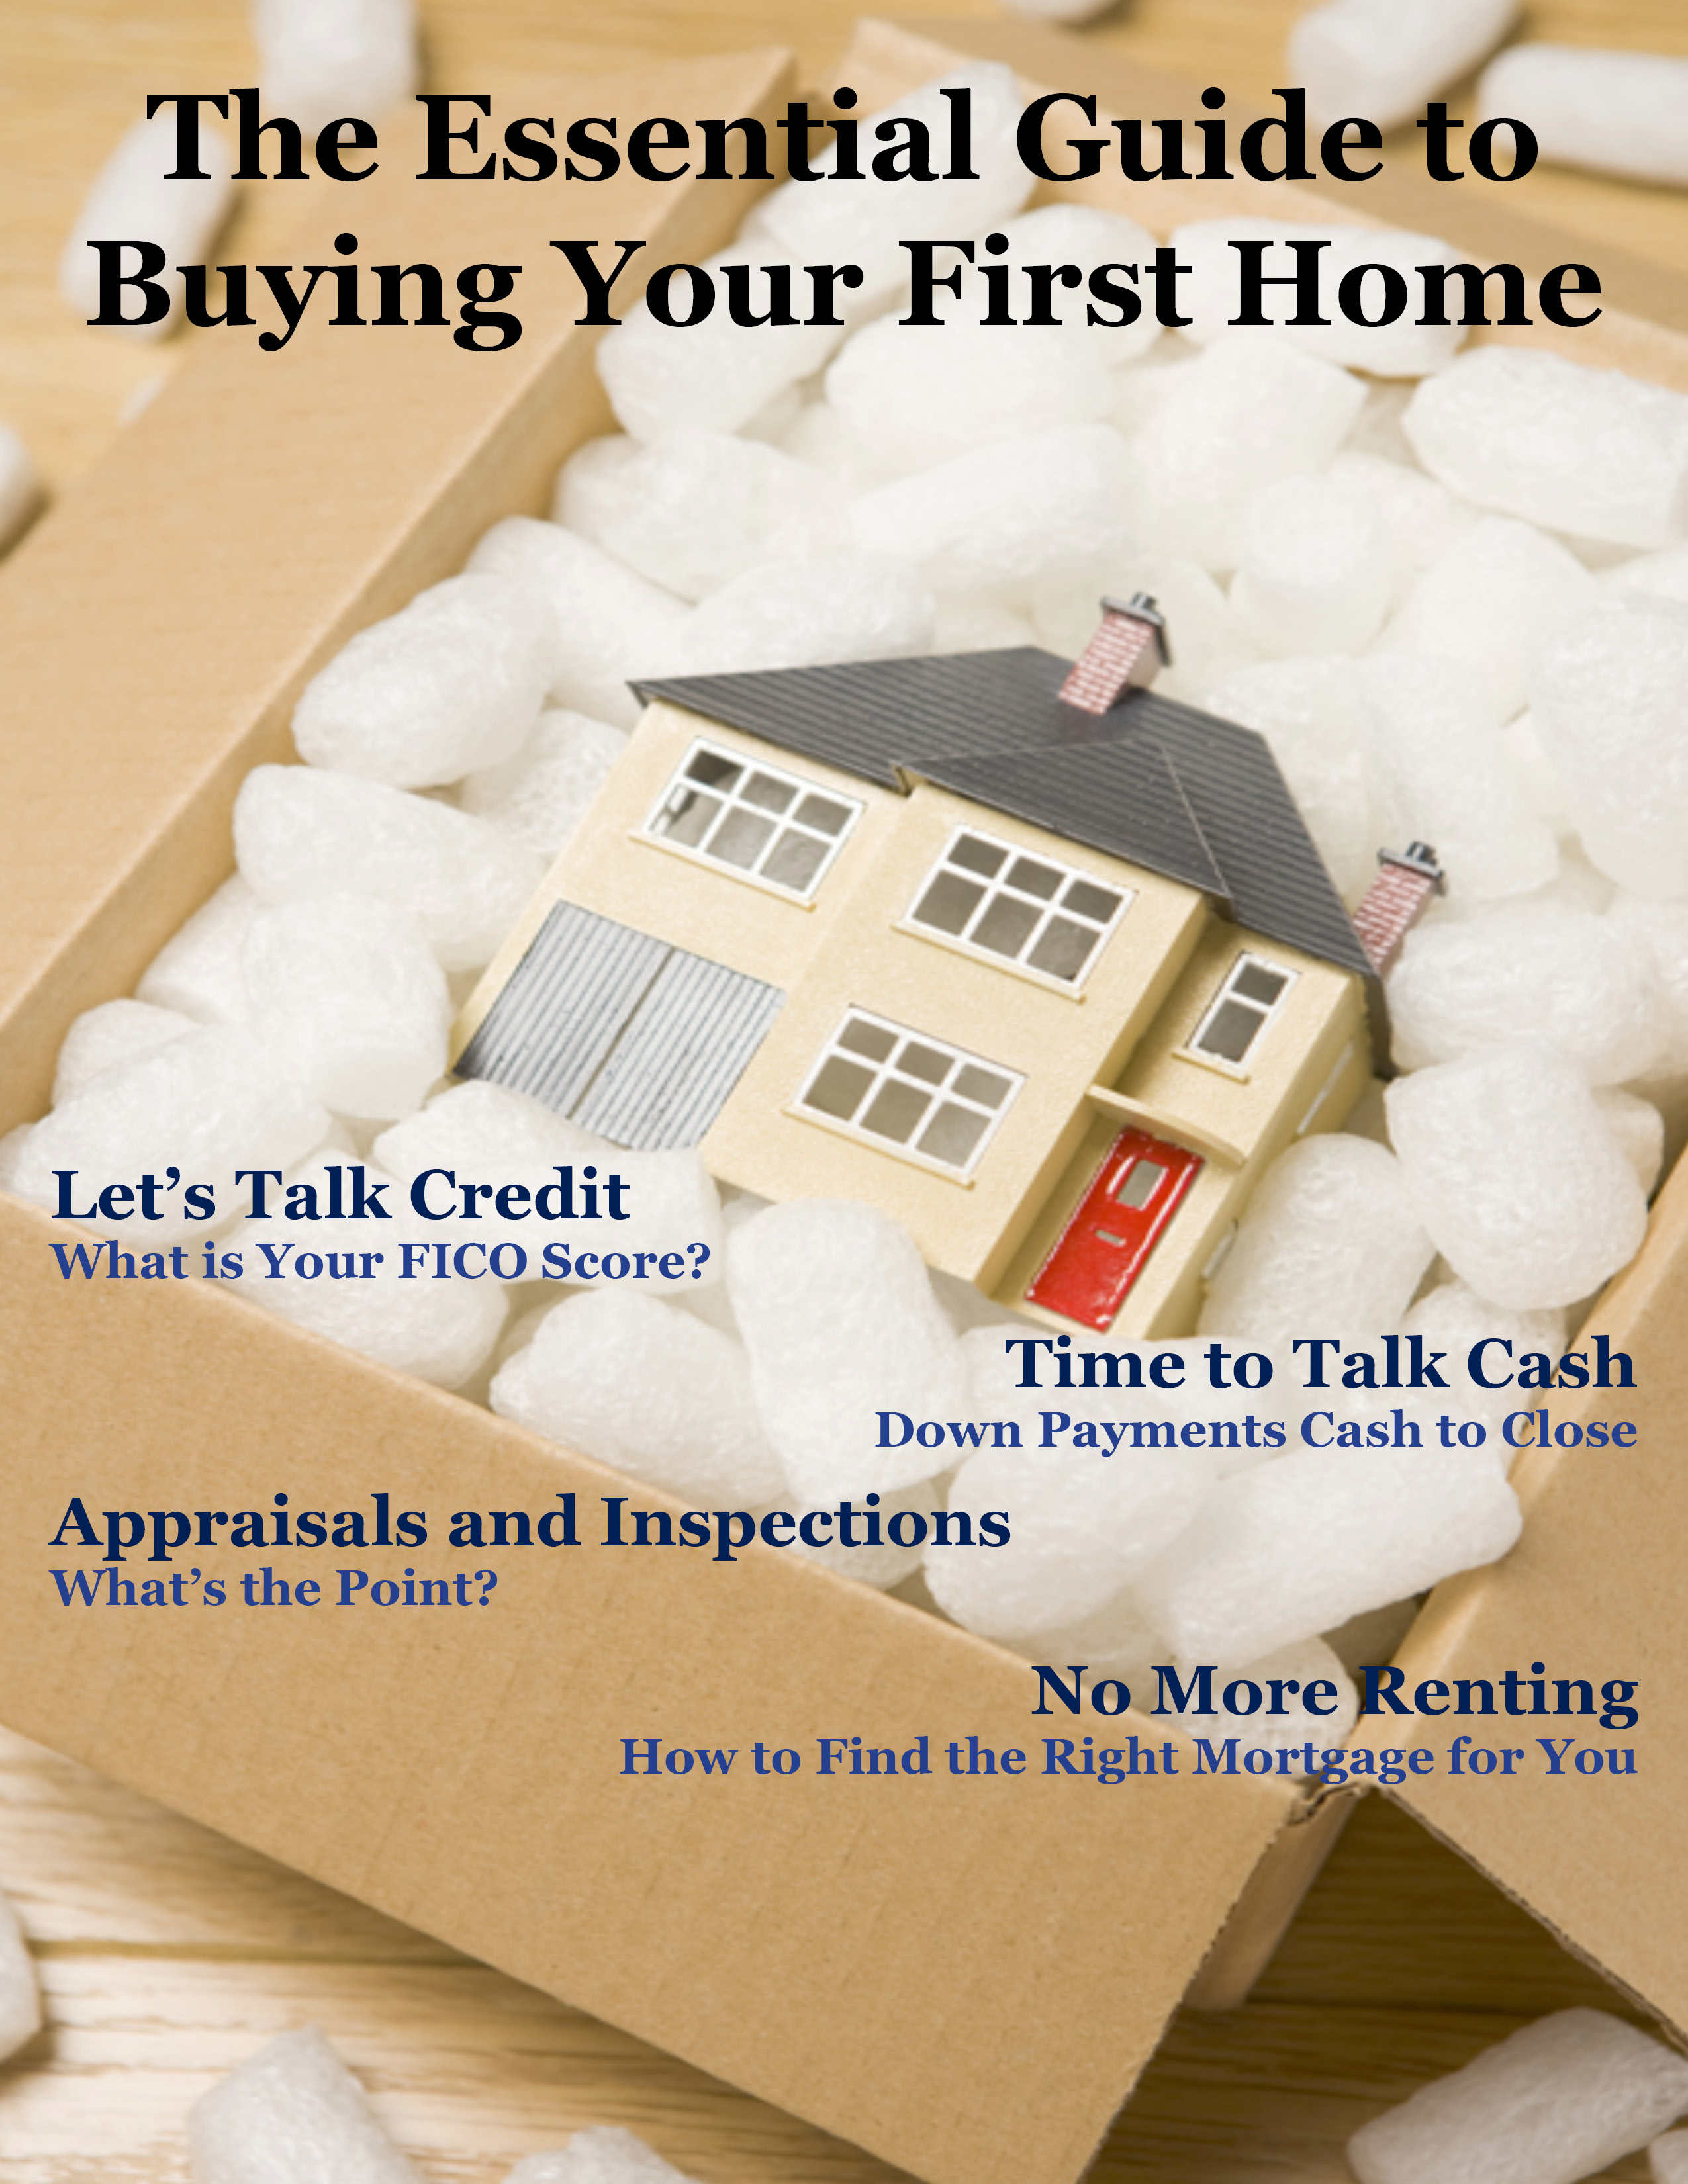 Essential Guide First Home cover 174px